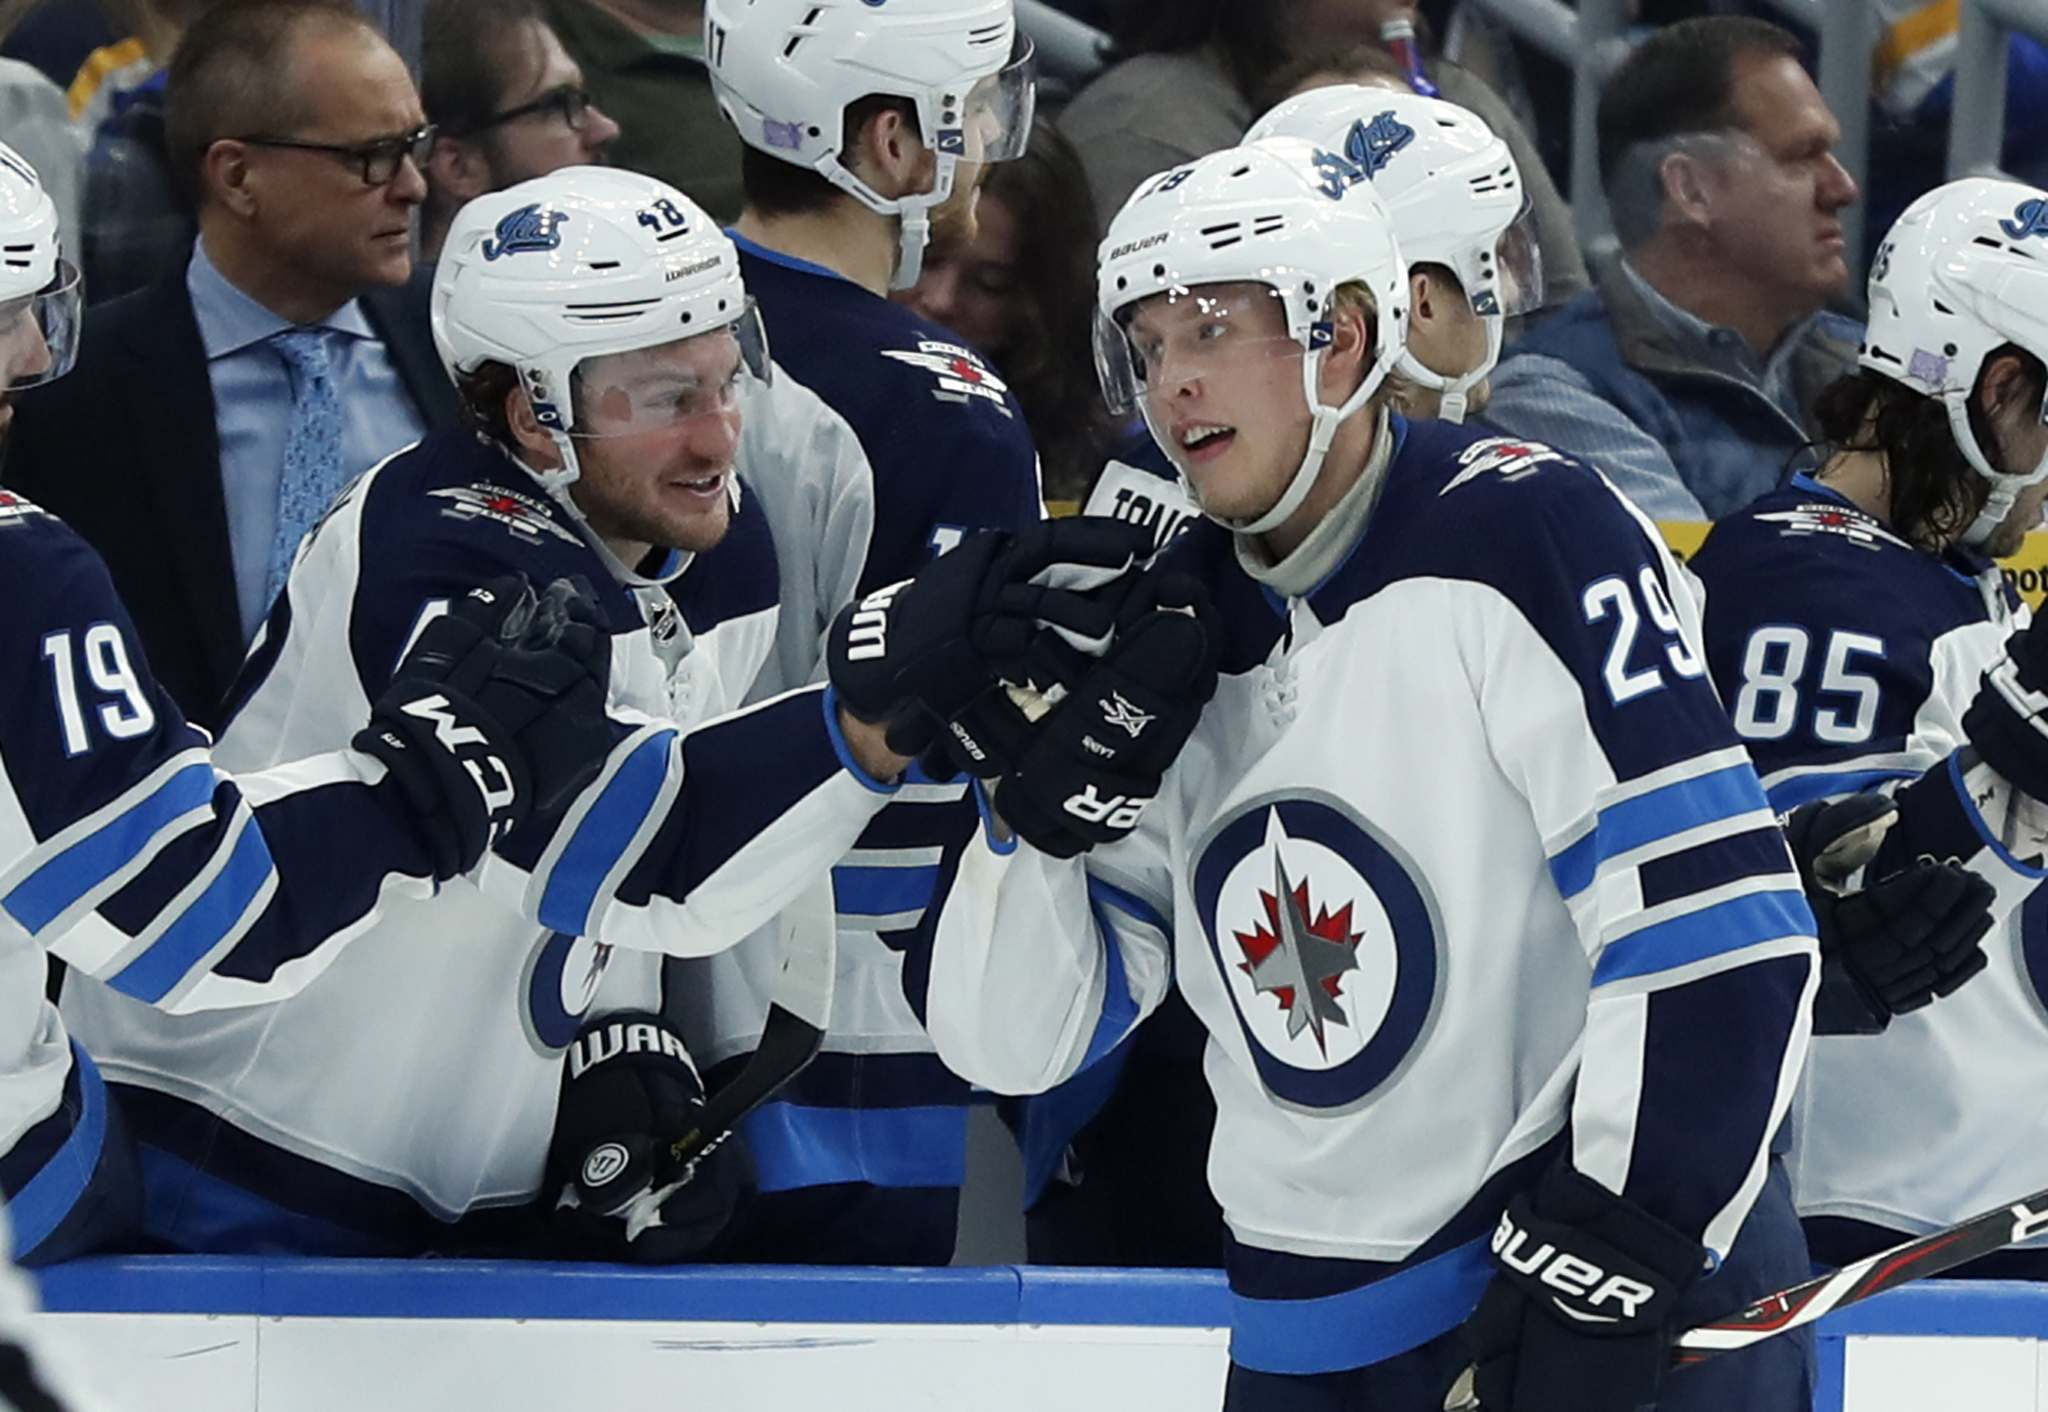 Patrik Laine is congratulated by teammates after scoring one of his five goals in one game against the St. Louis Blues, in November 2018.